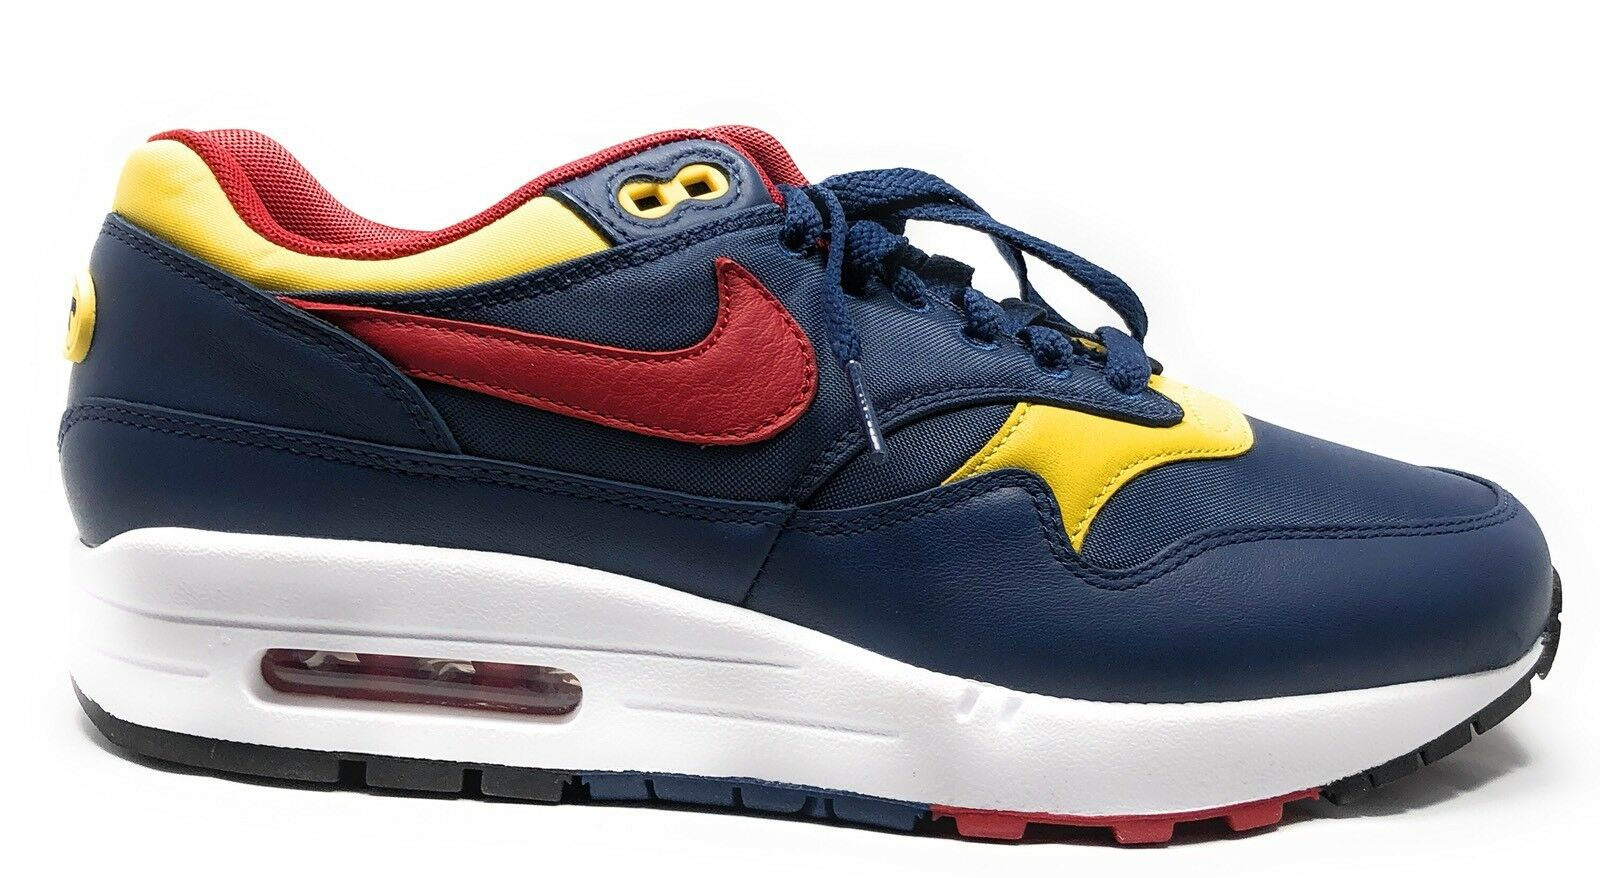 {875844-403} MEN'S NIKE AIR MAX 1 PREMIUM SHOE NAVY GYM RED NEW